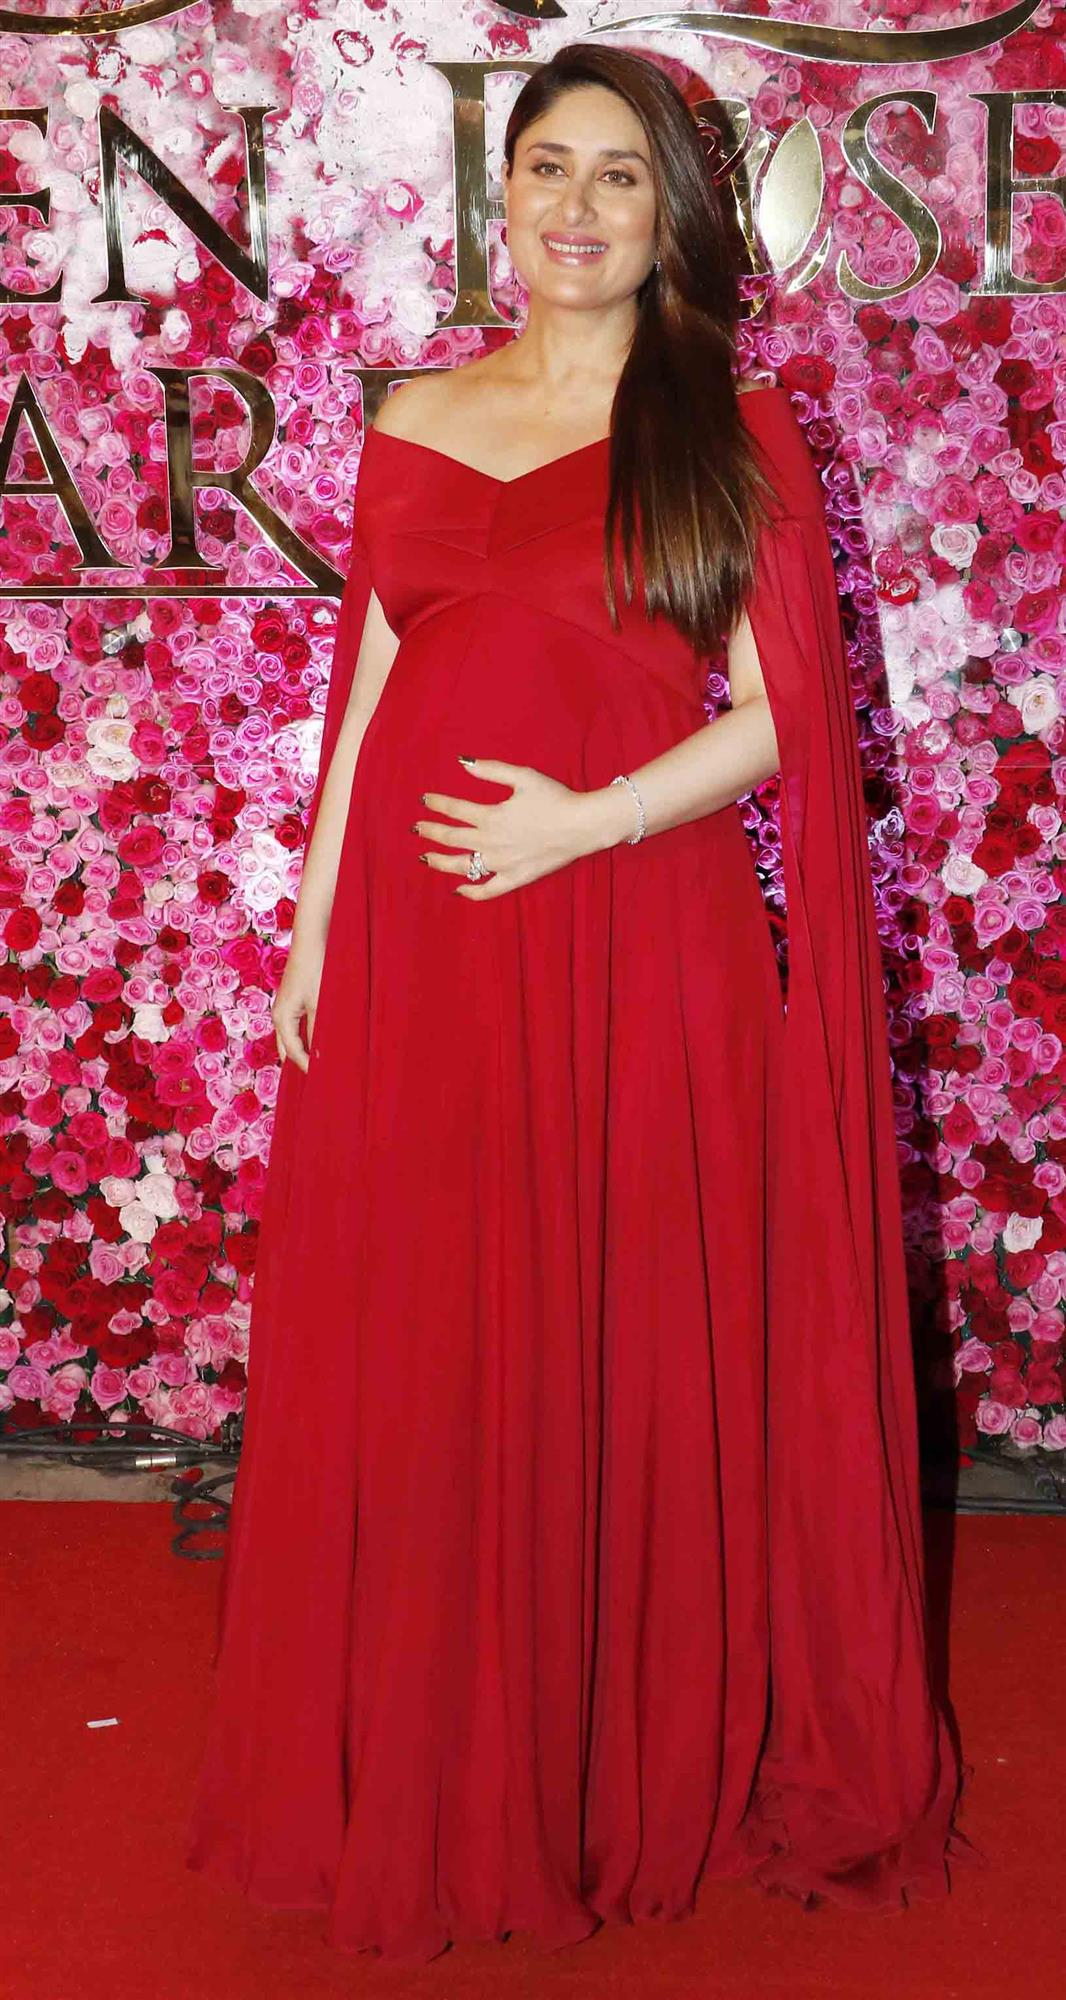 Kareena is looking gorgeous in this loose red dress.